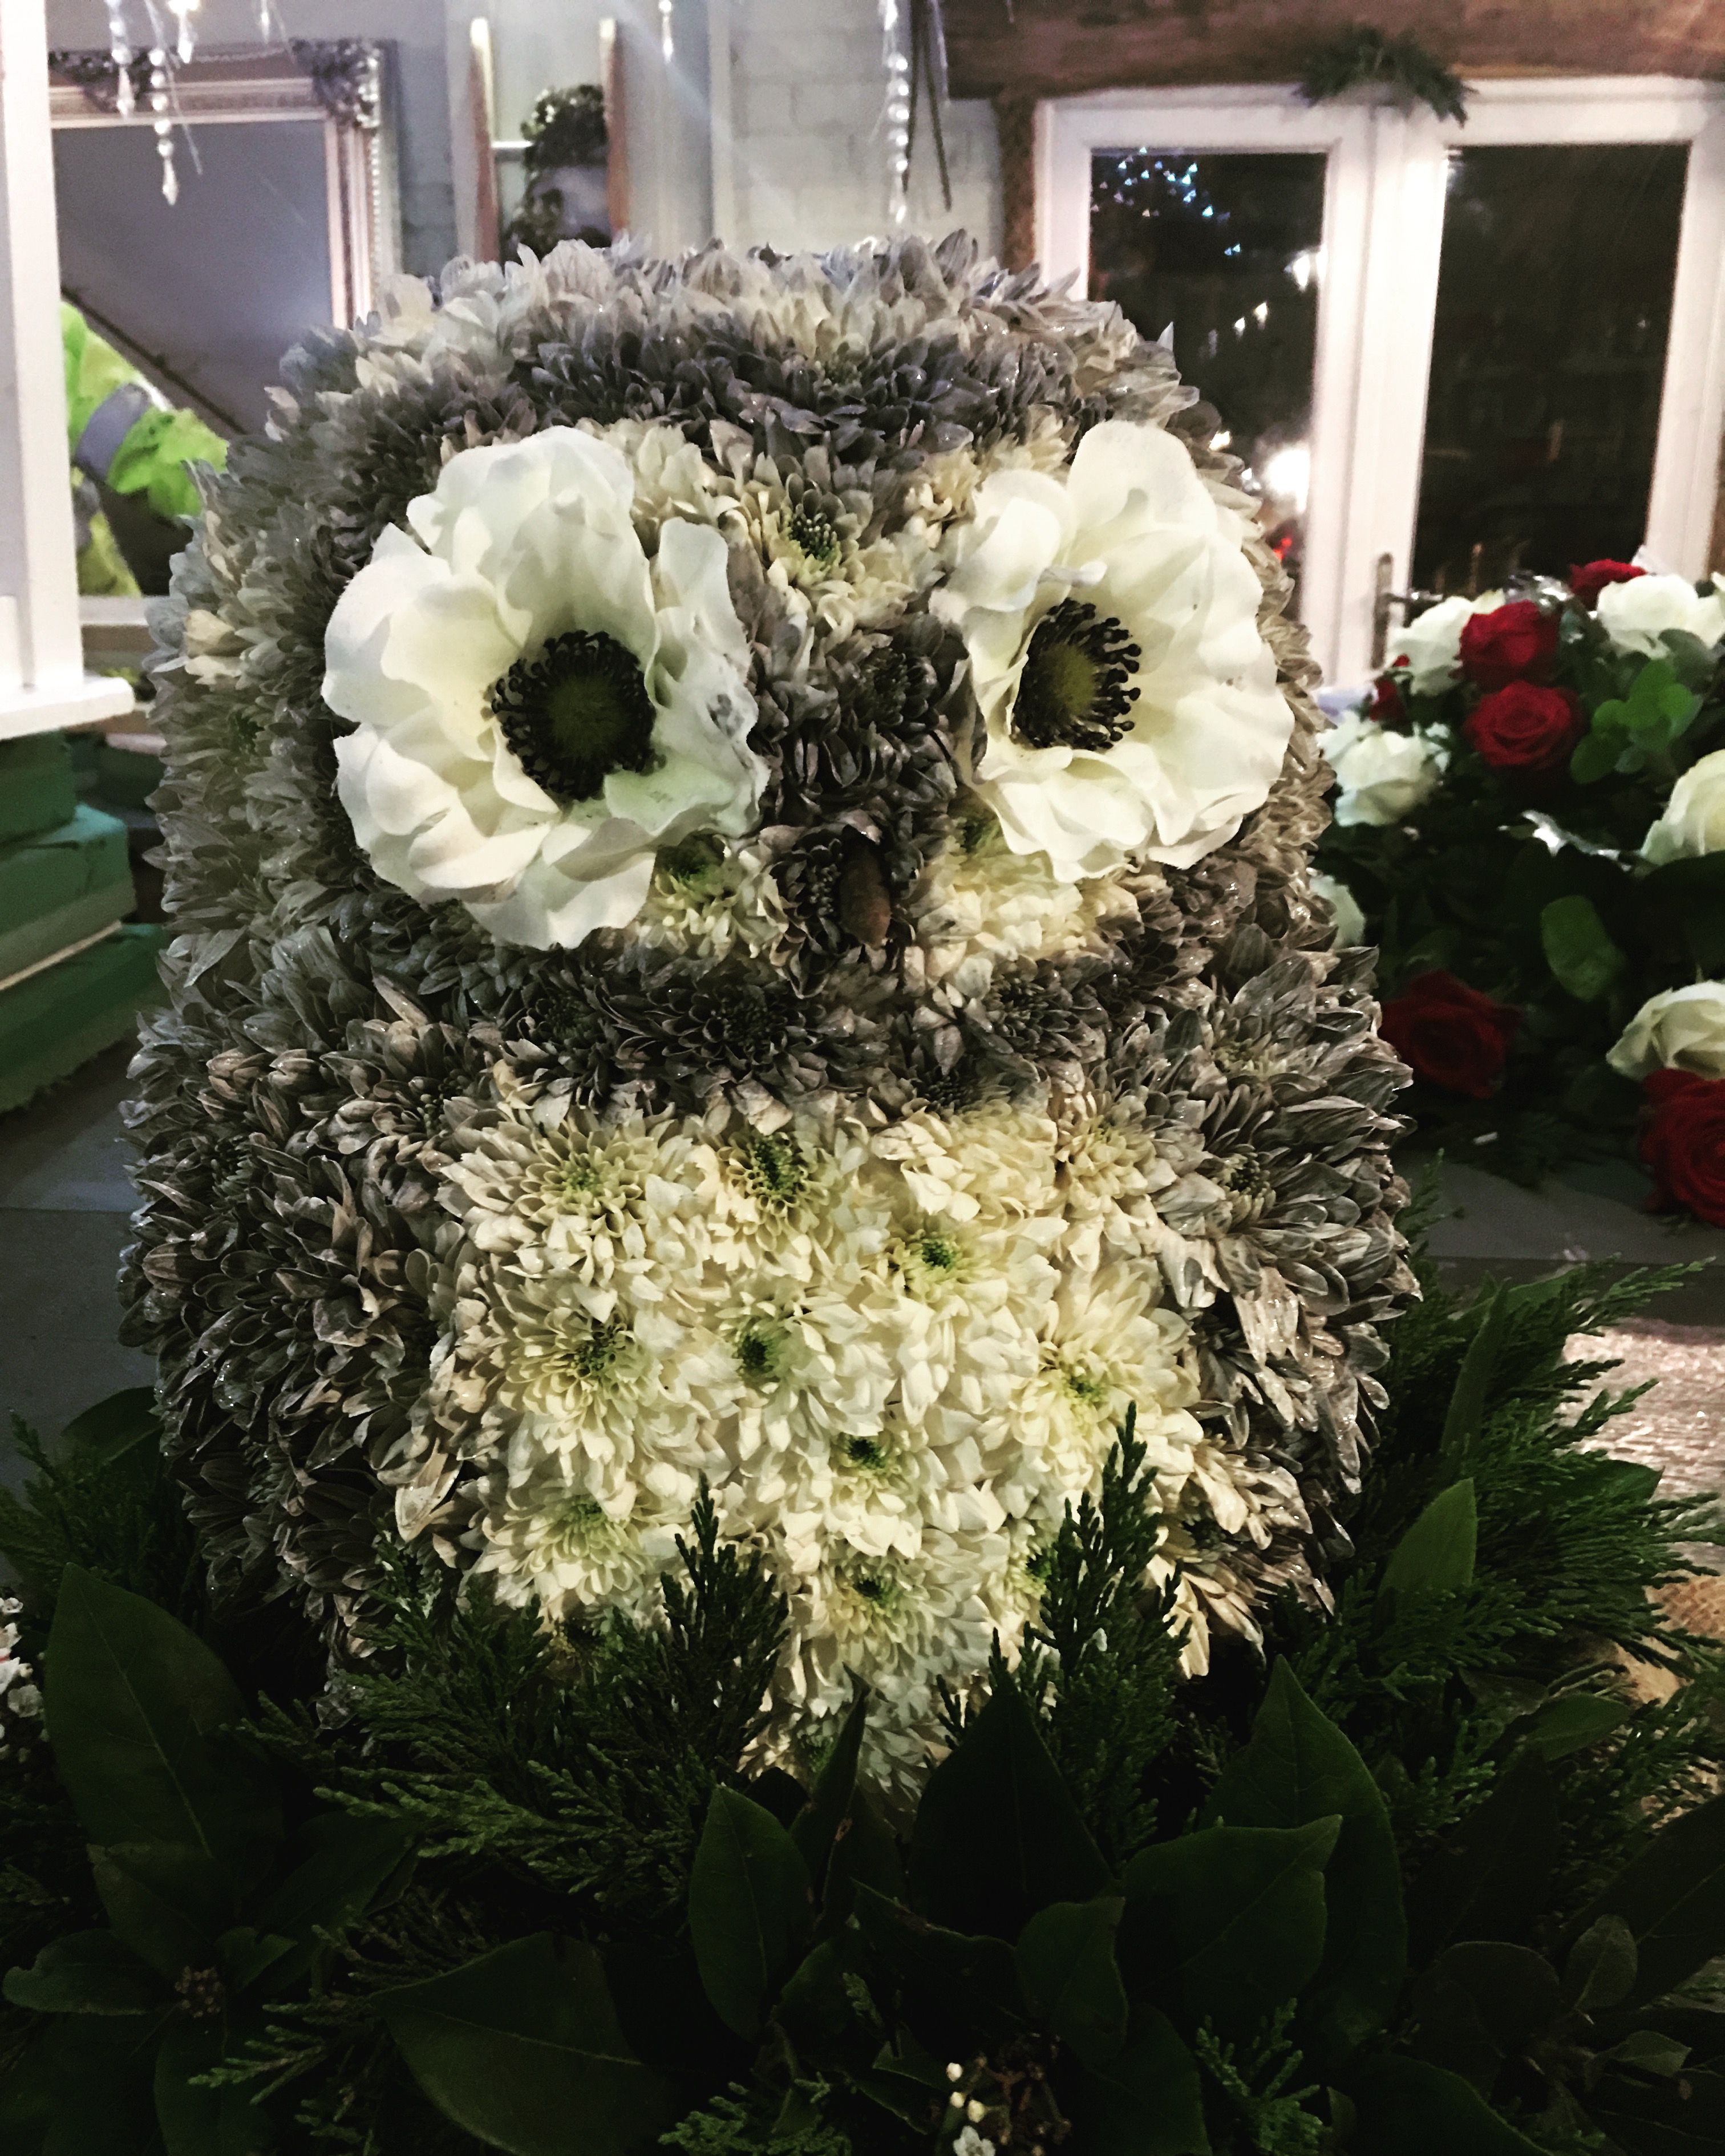 Bespoke funeral flower tribute owl funeral flower tribute www bespoke funeral flower tribute owl funeral flower tribute thefloralartstudio izmirmasajfo Image collections